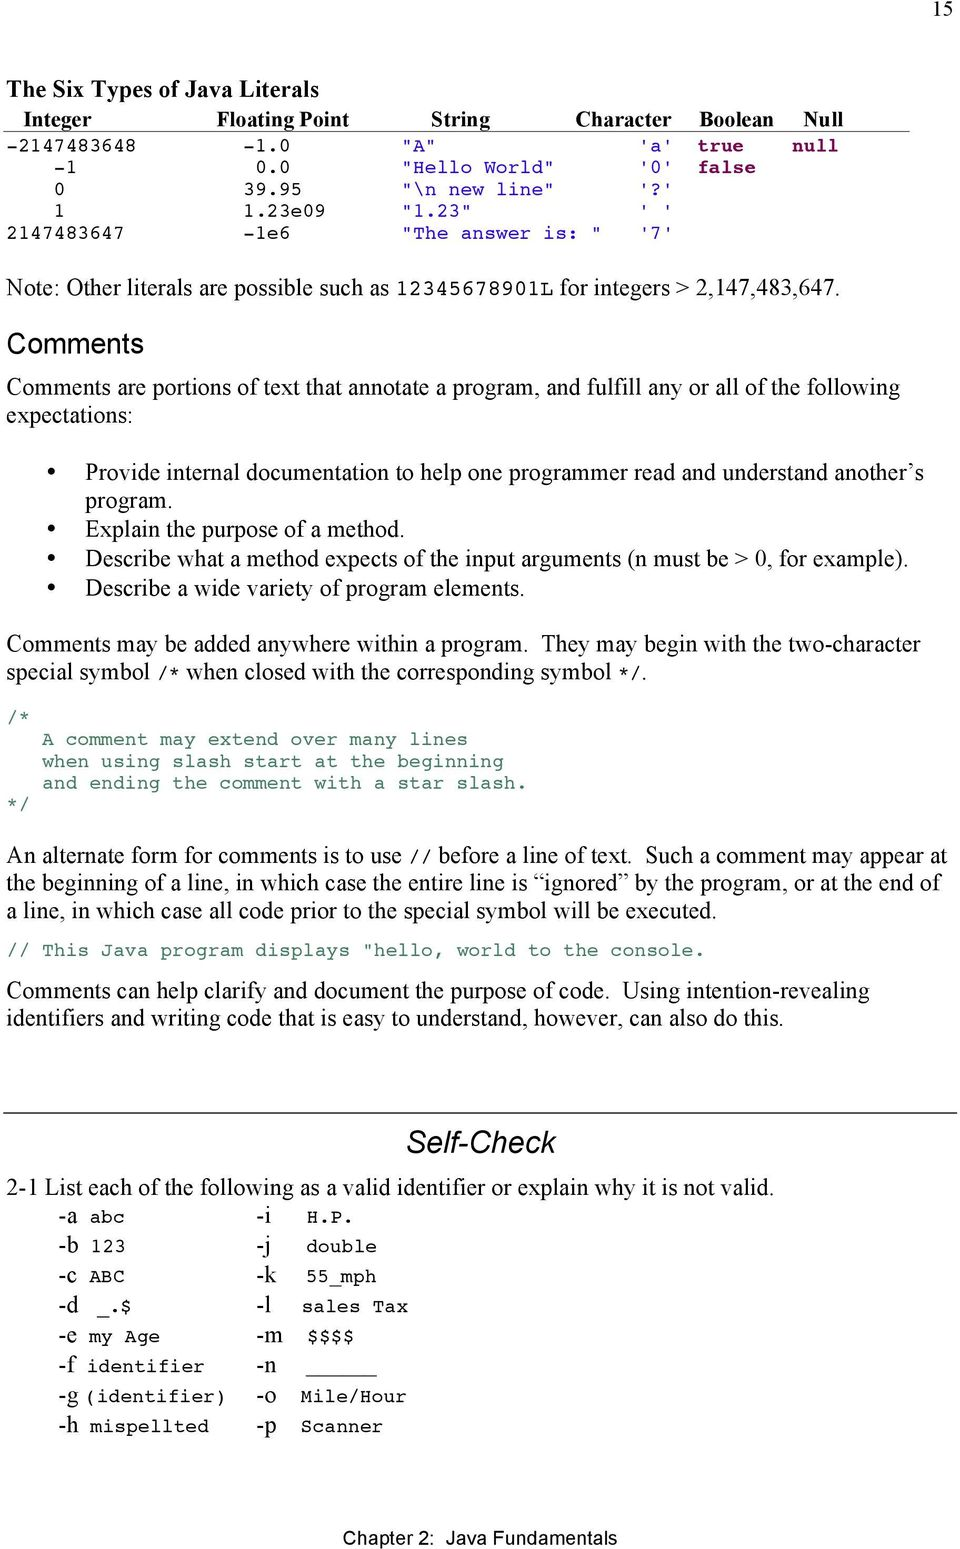 Comments Comments are portions of text that annotate a program, and fulfill any or all of the following expectations: Provide internal documentation to help one programmer read and understand another